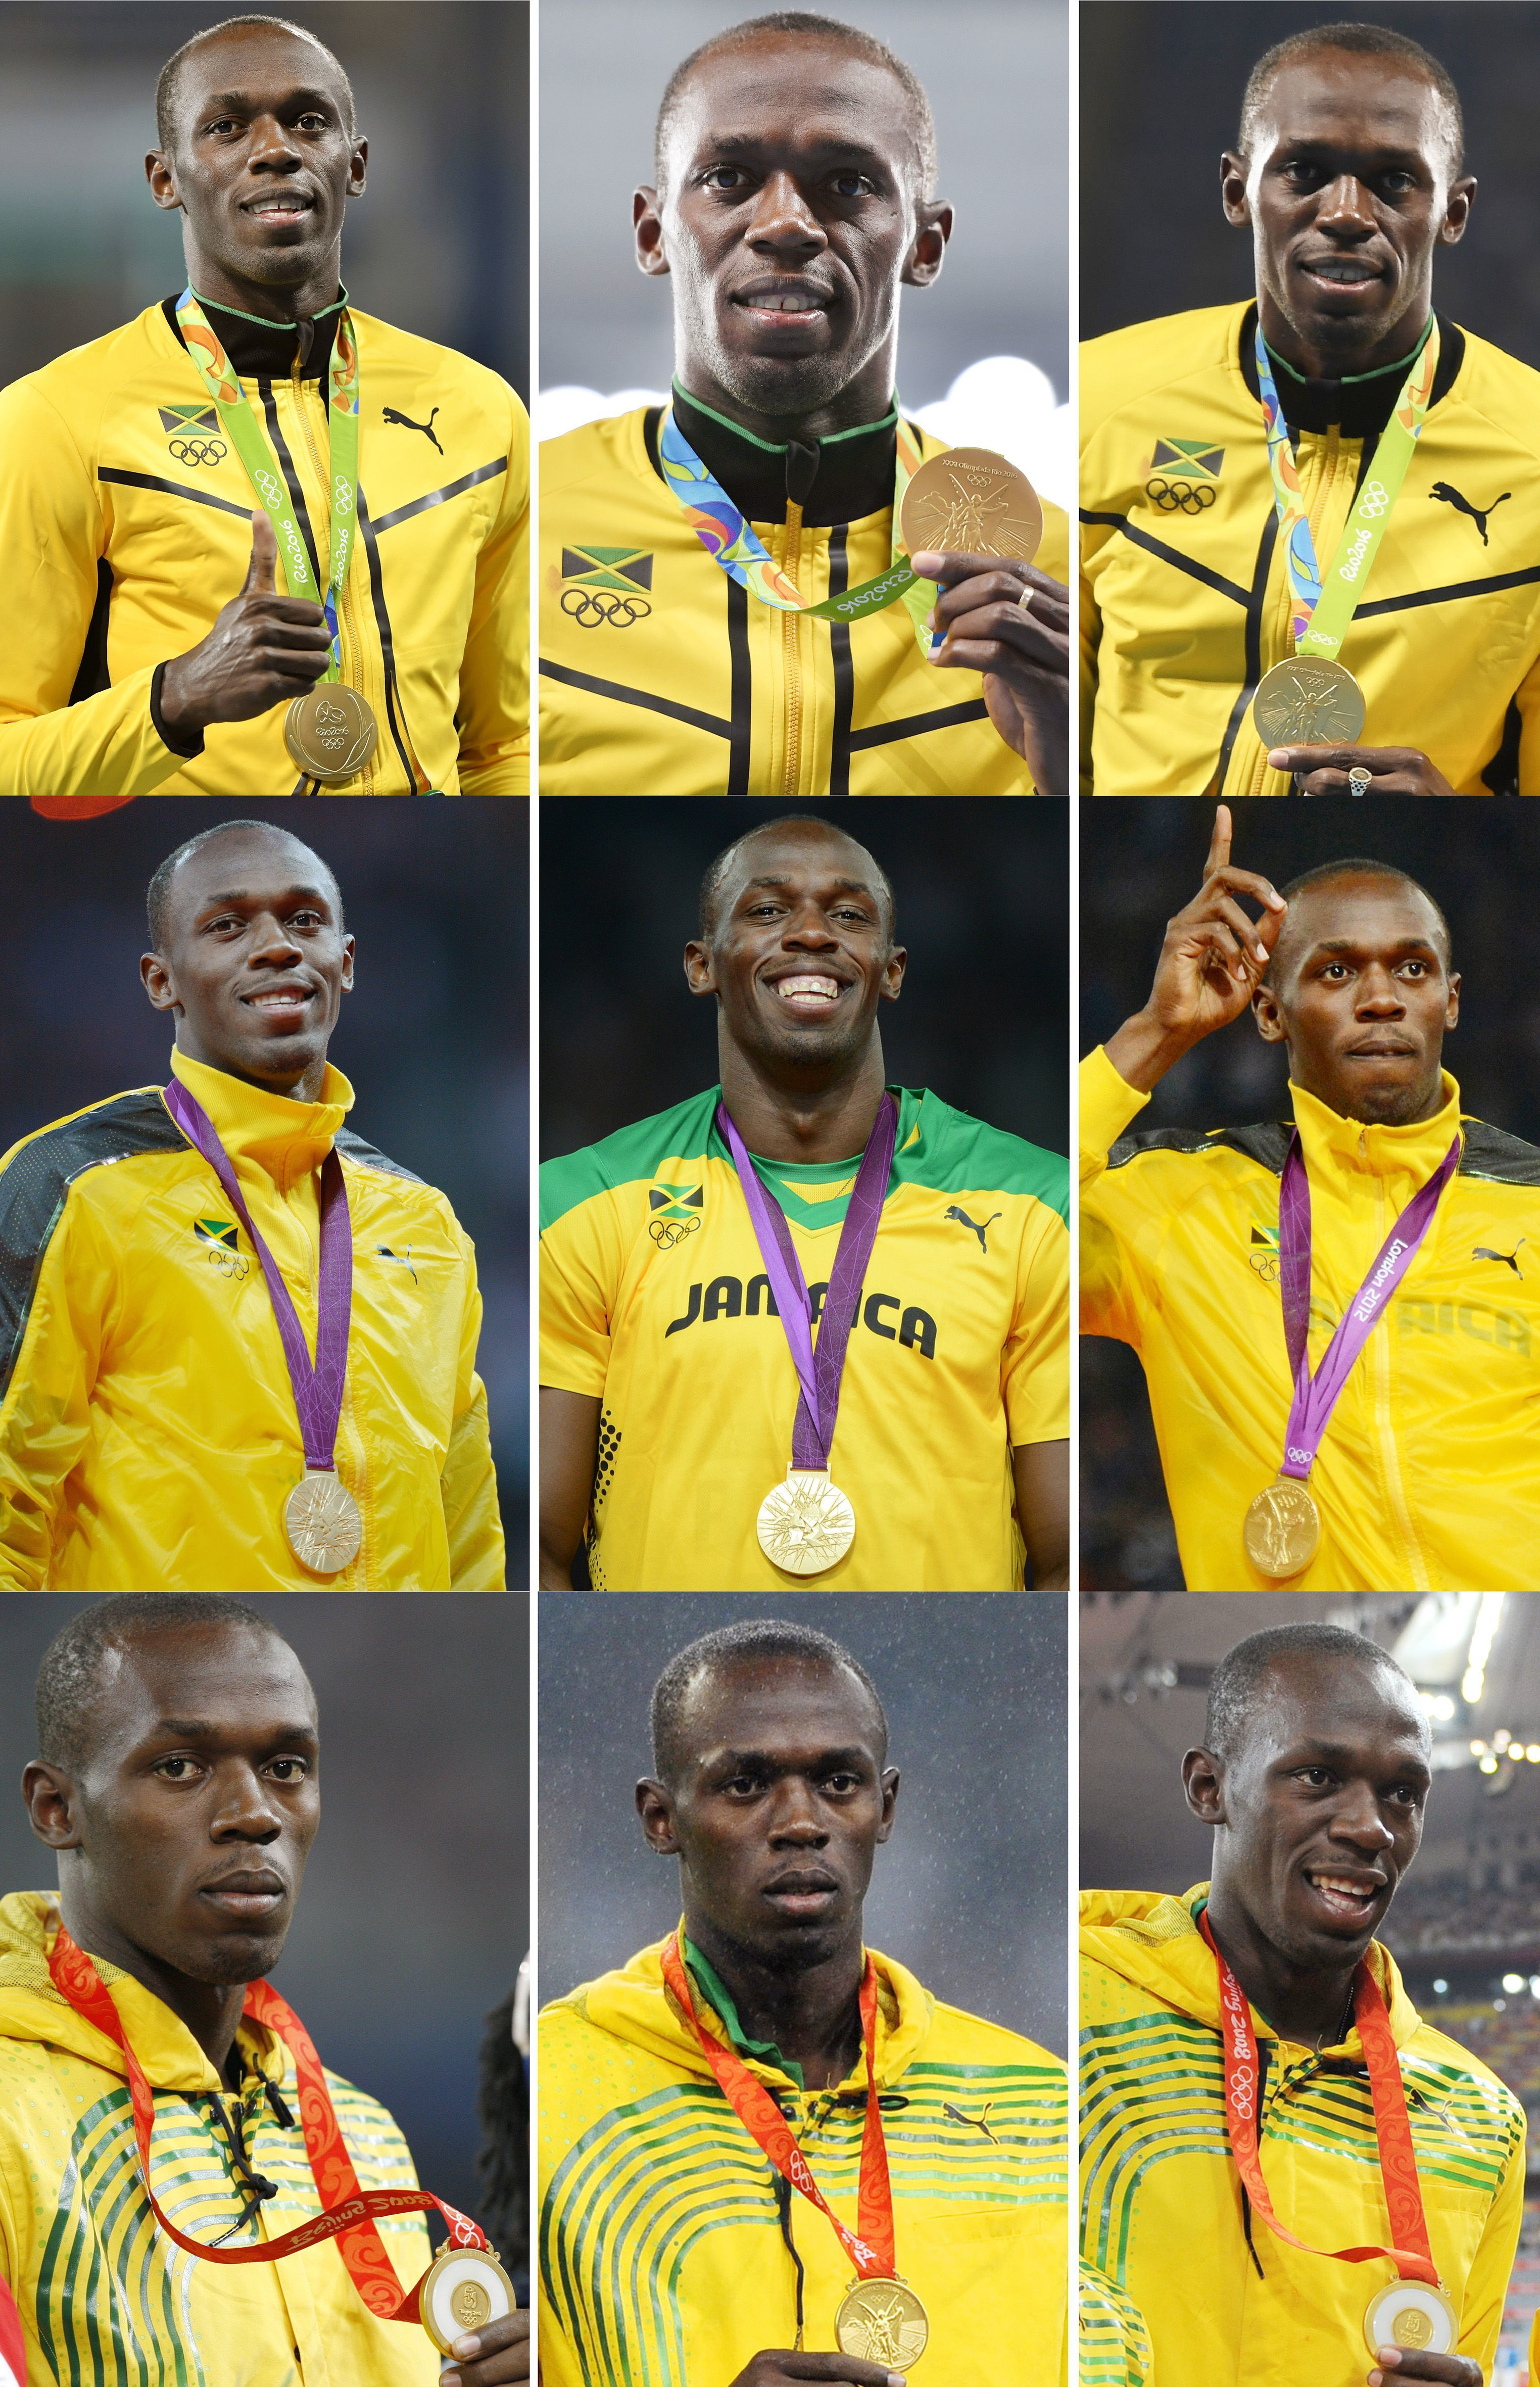 Usain Bolt Loses A Gold Medal After 2008 Teammate's Failed Test : The  Two-Way : NPR